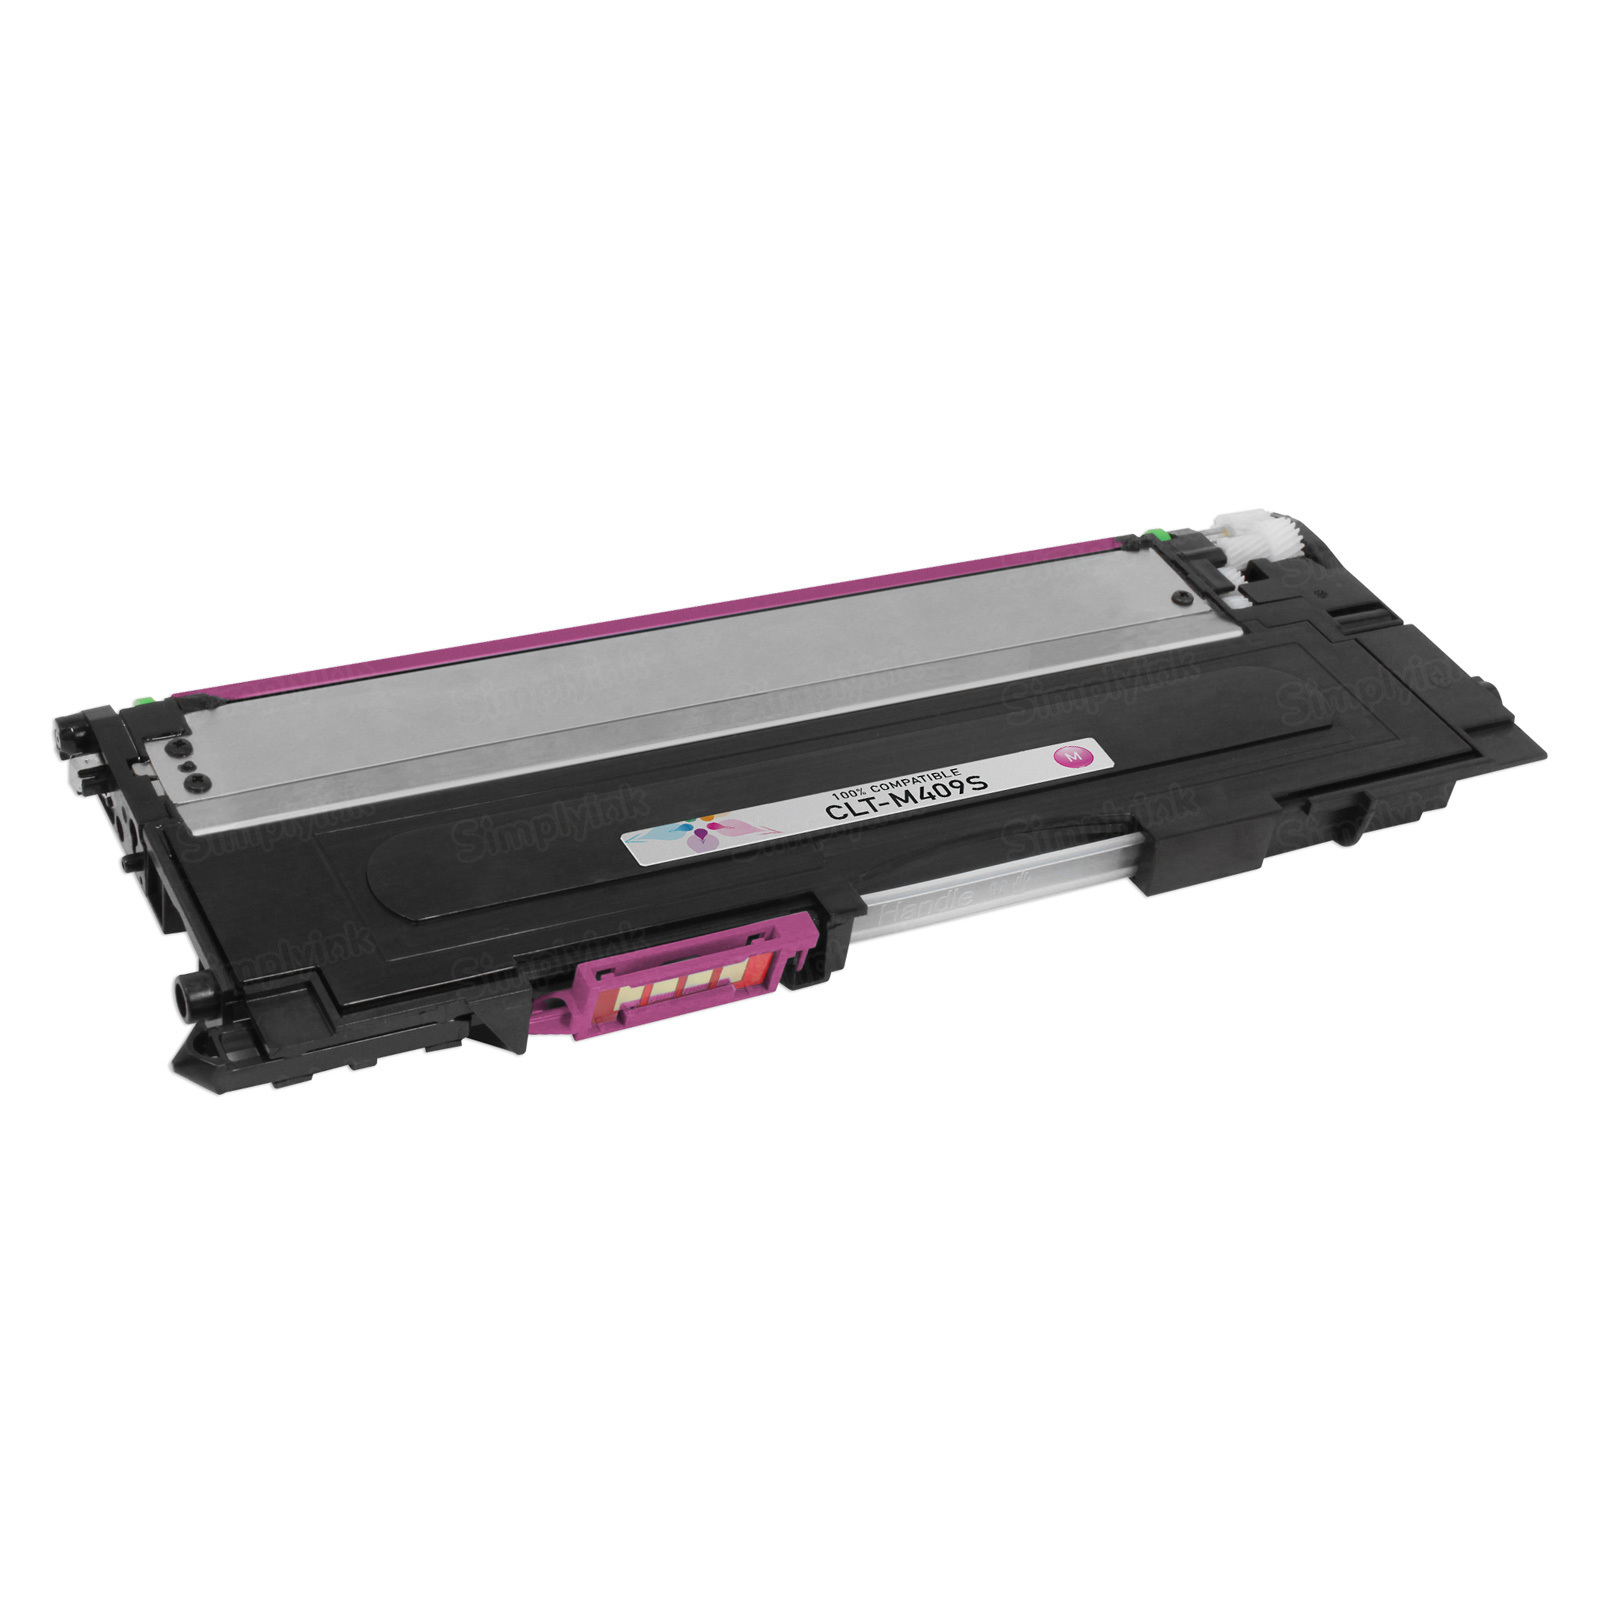 Compatible Alternative CLT-M409S Magenta Toner for use in Samsung CLP-315 & CLX-3175 Printers